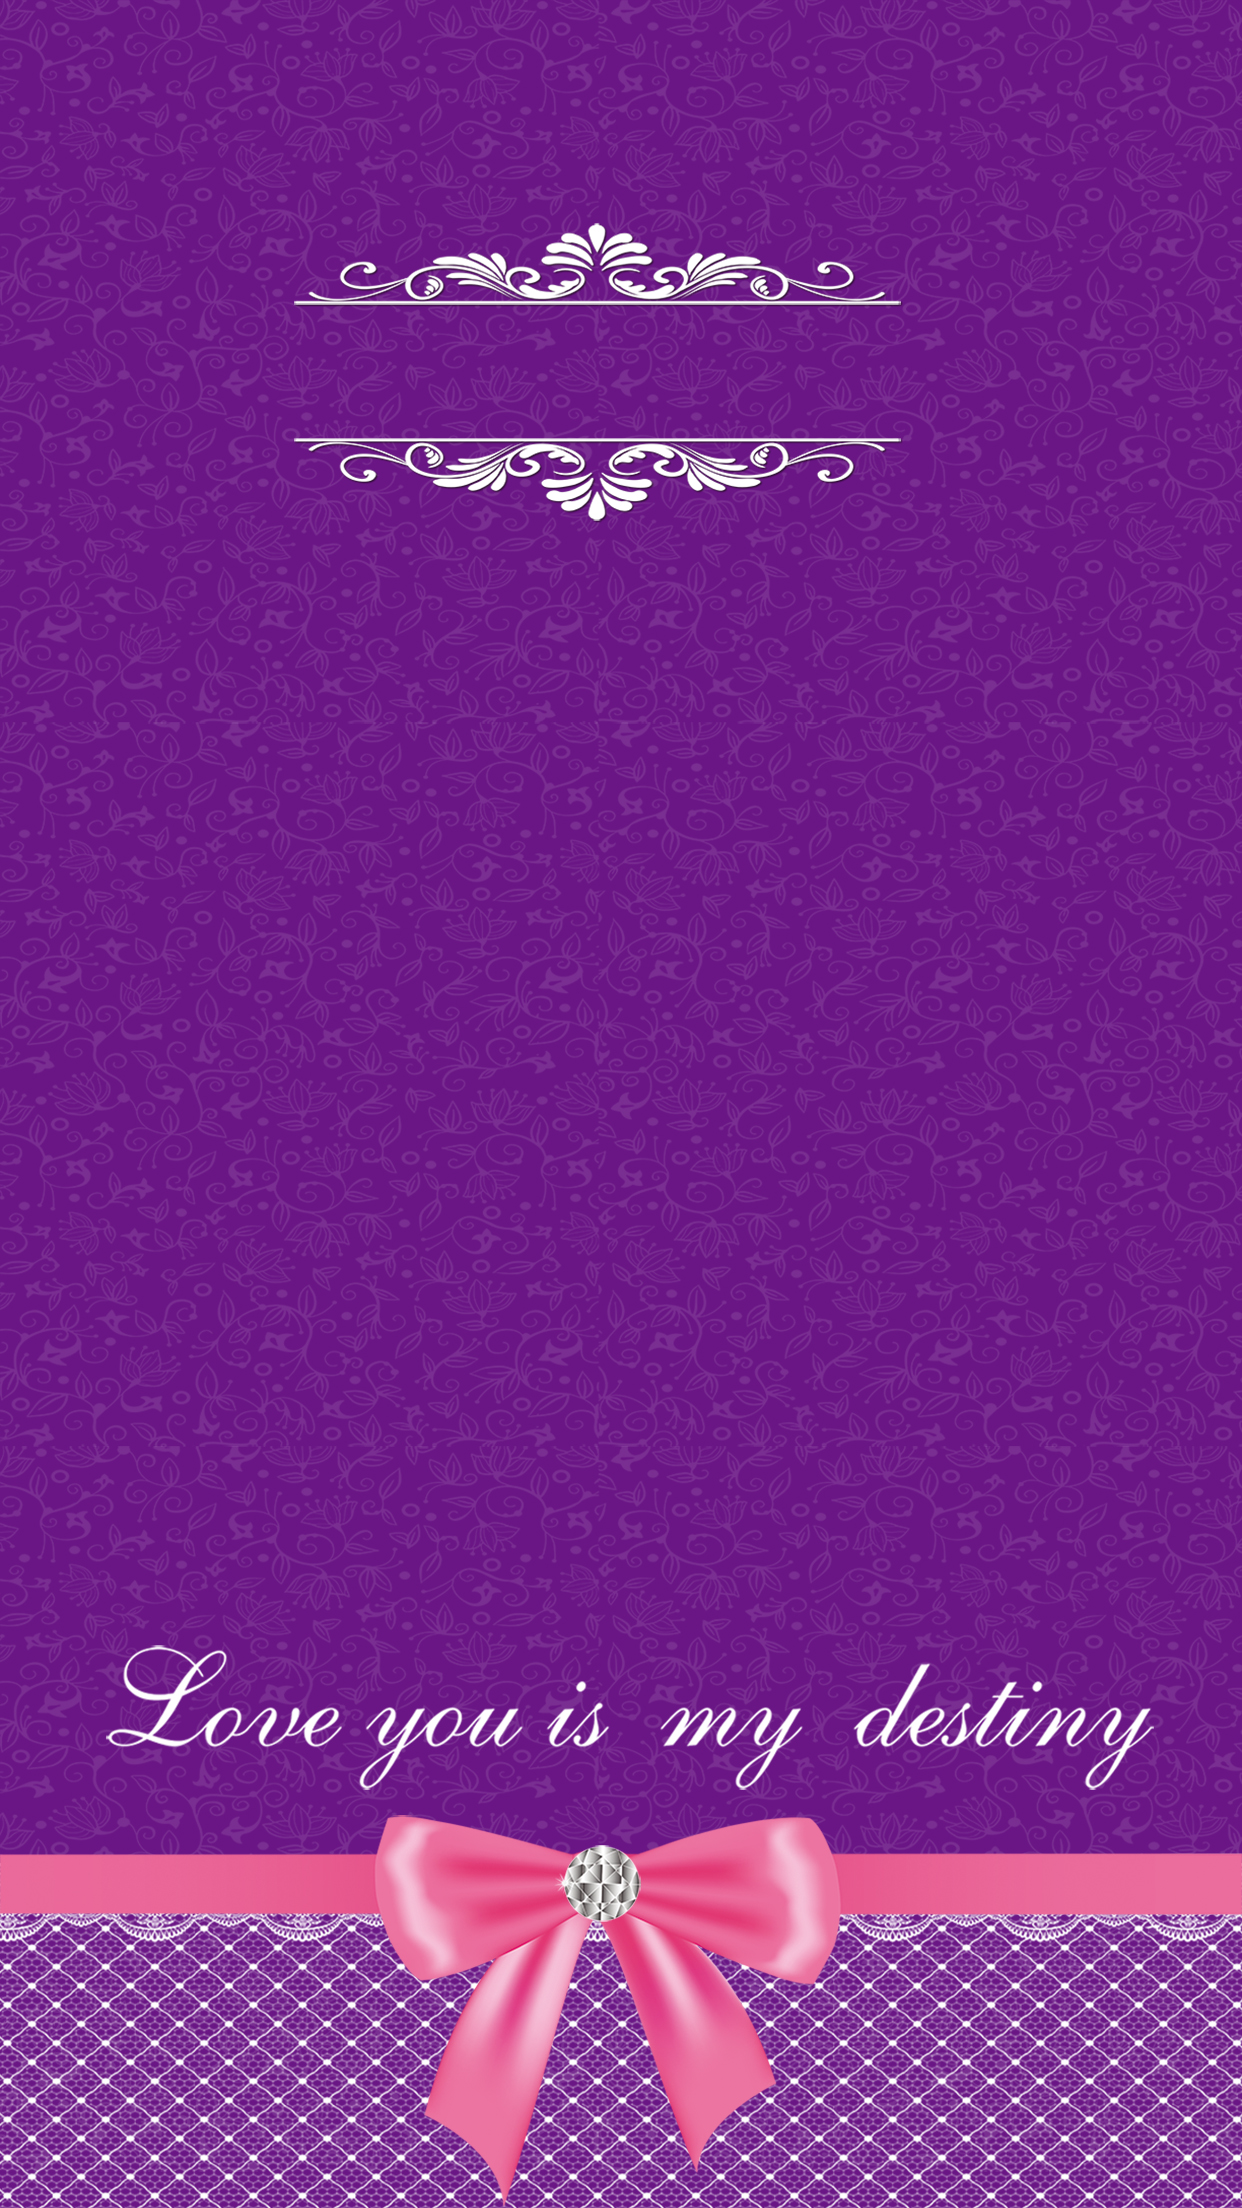 purple wedding lace pattern h5 background material